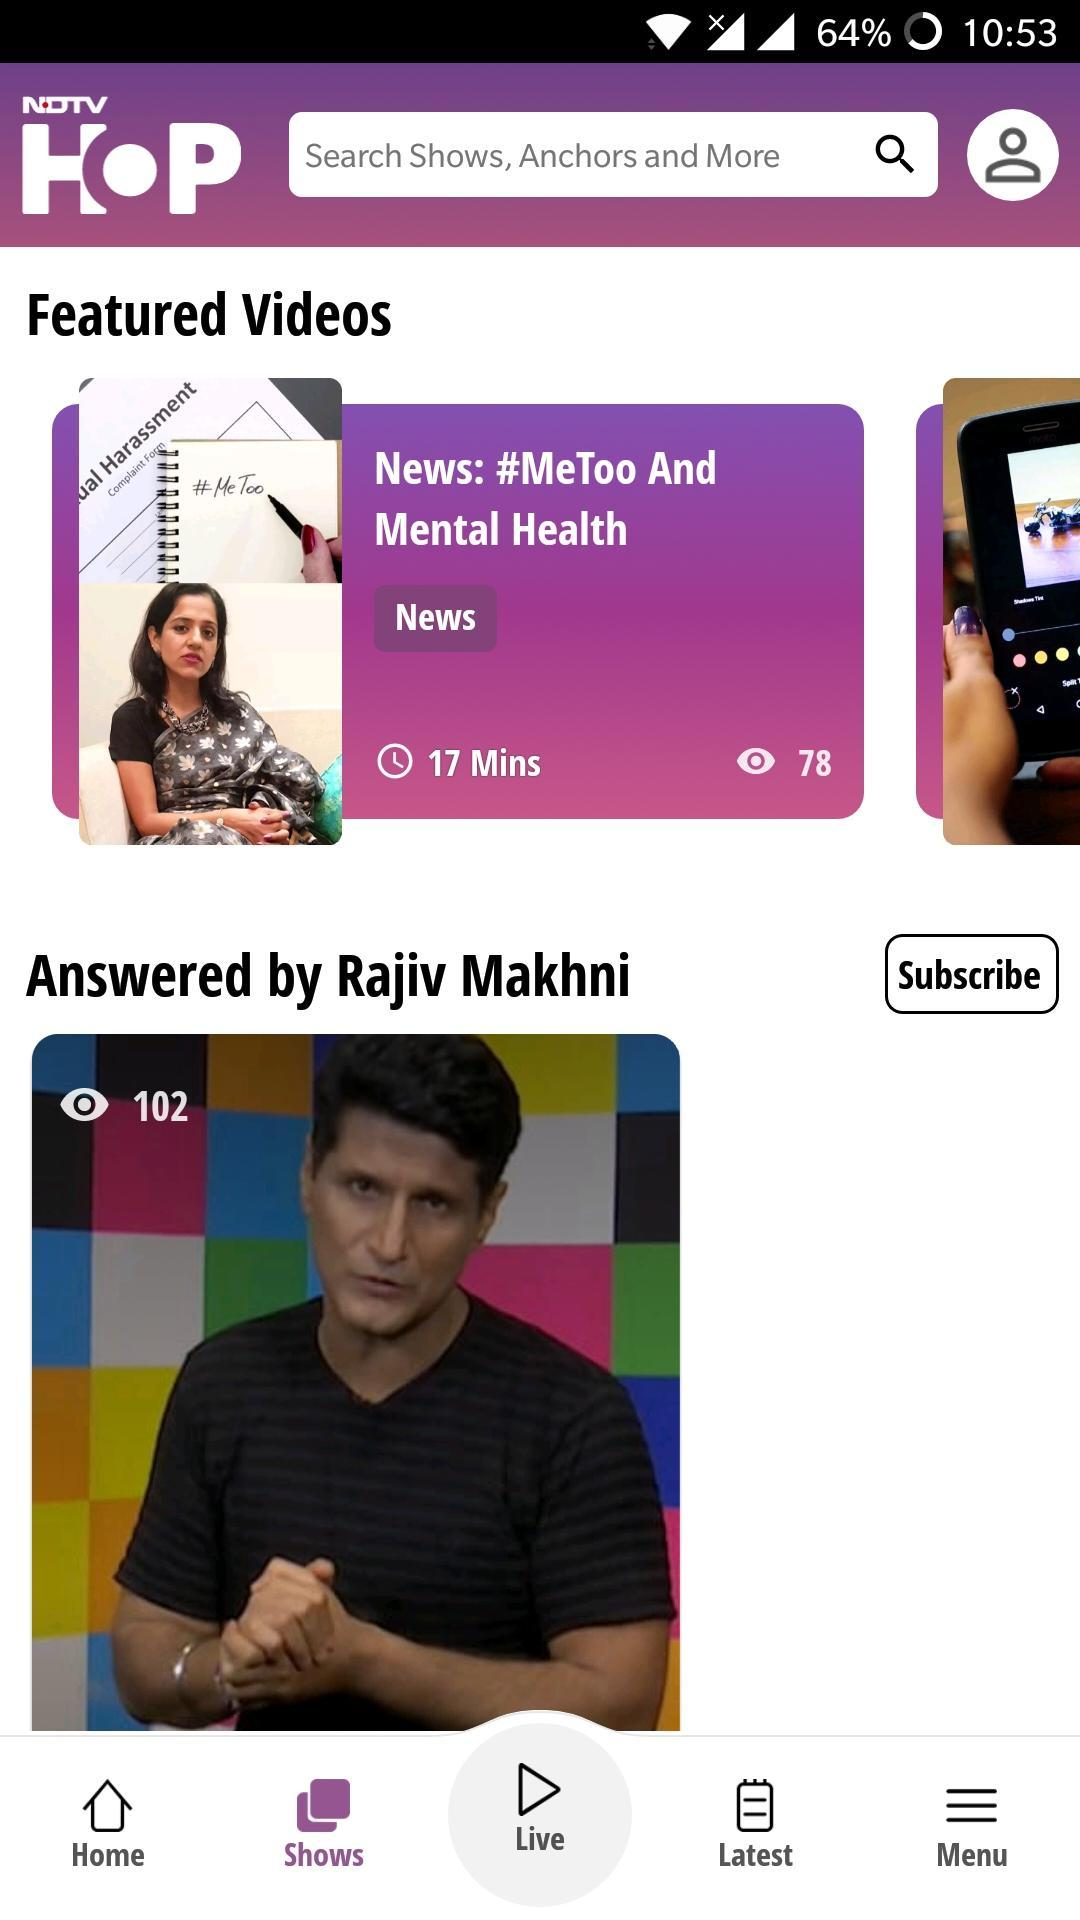 NDTV Hop Live for Android - APK Download